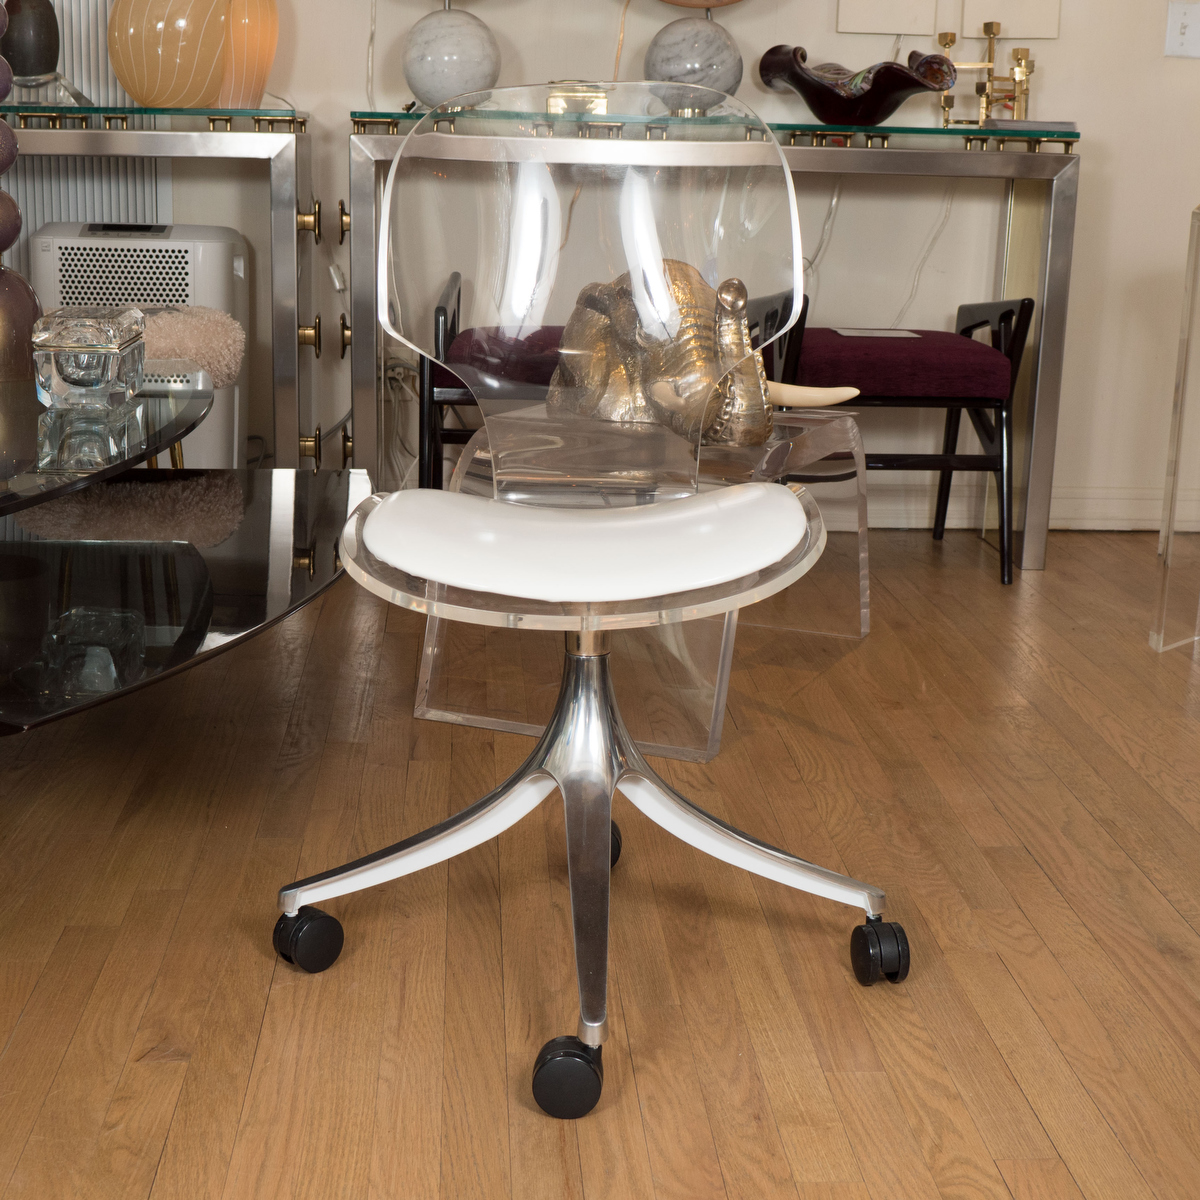 Acrylic Desk Chair Rolling Lucite Chair Desk Chairs John Salibello